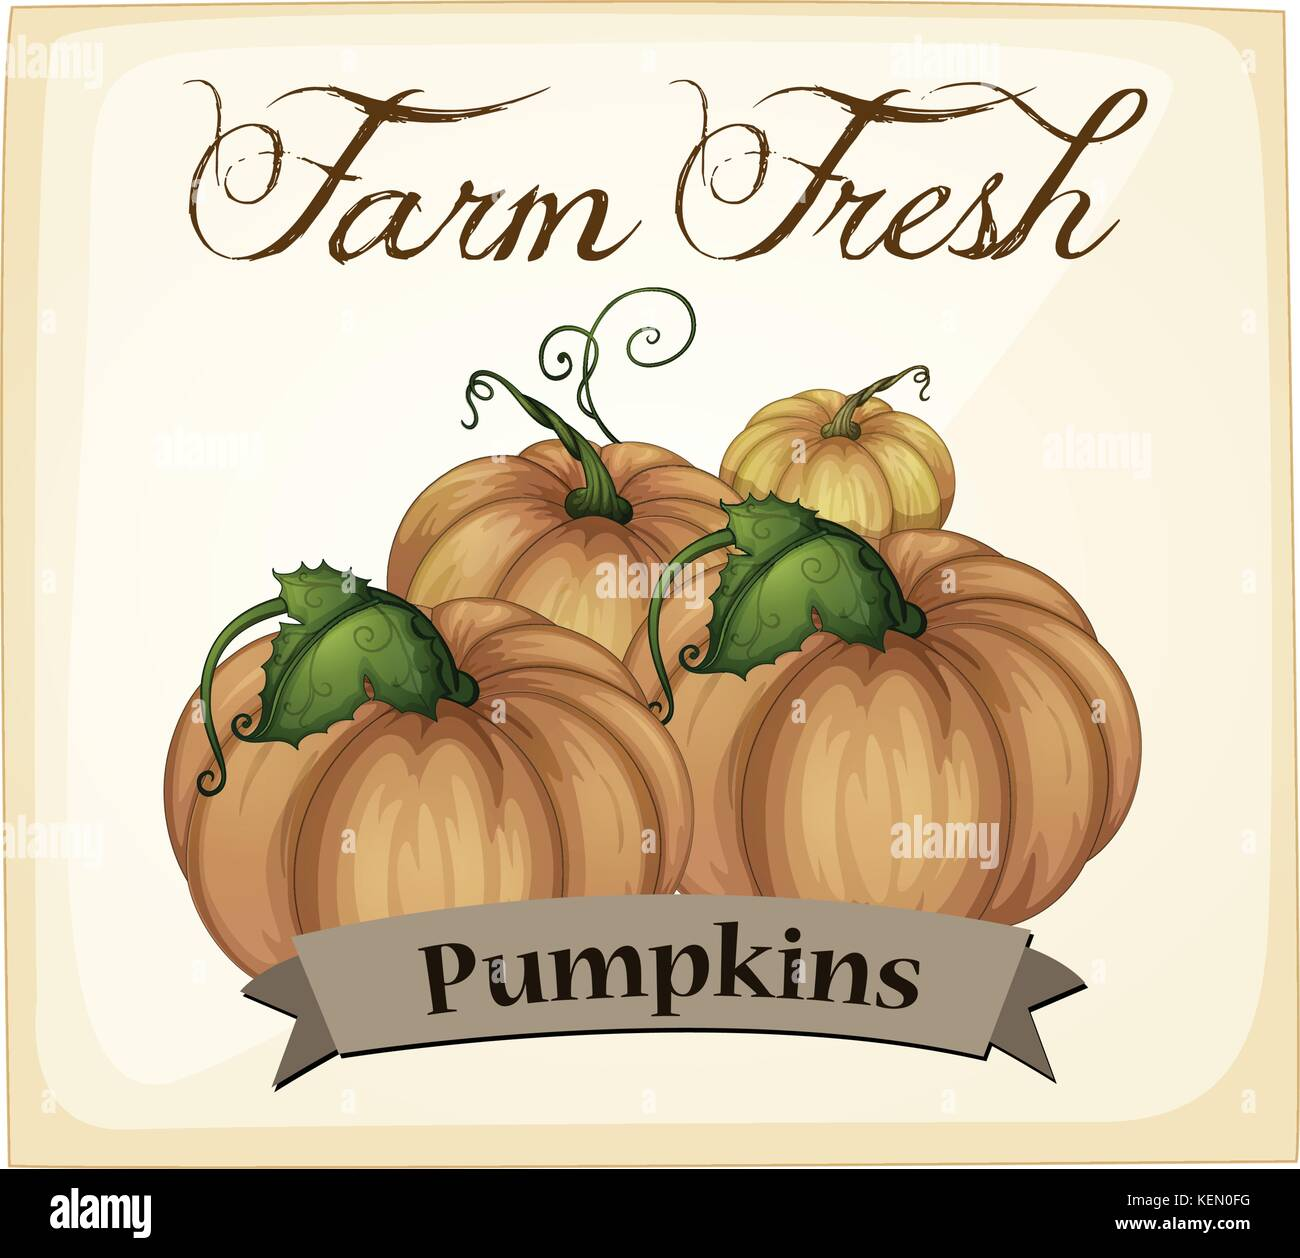 Pumpkins poster with text and label - Stock Vector